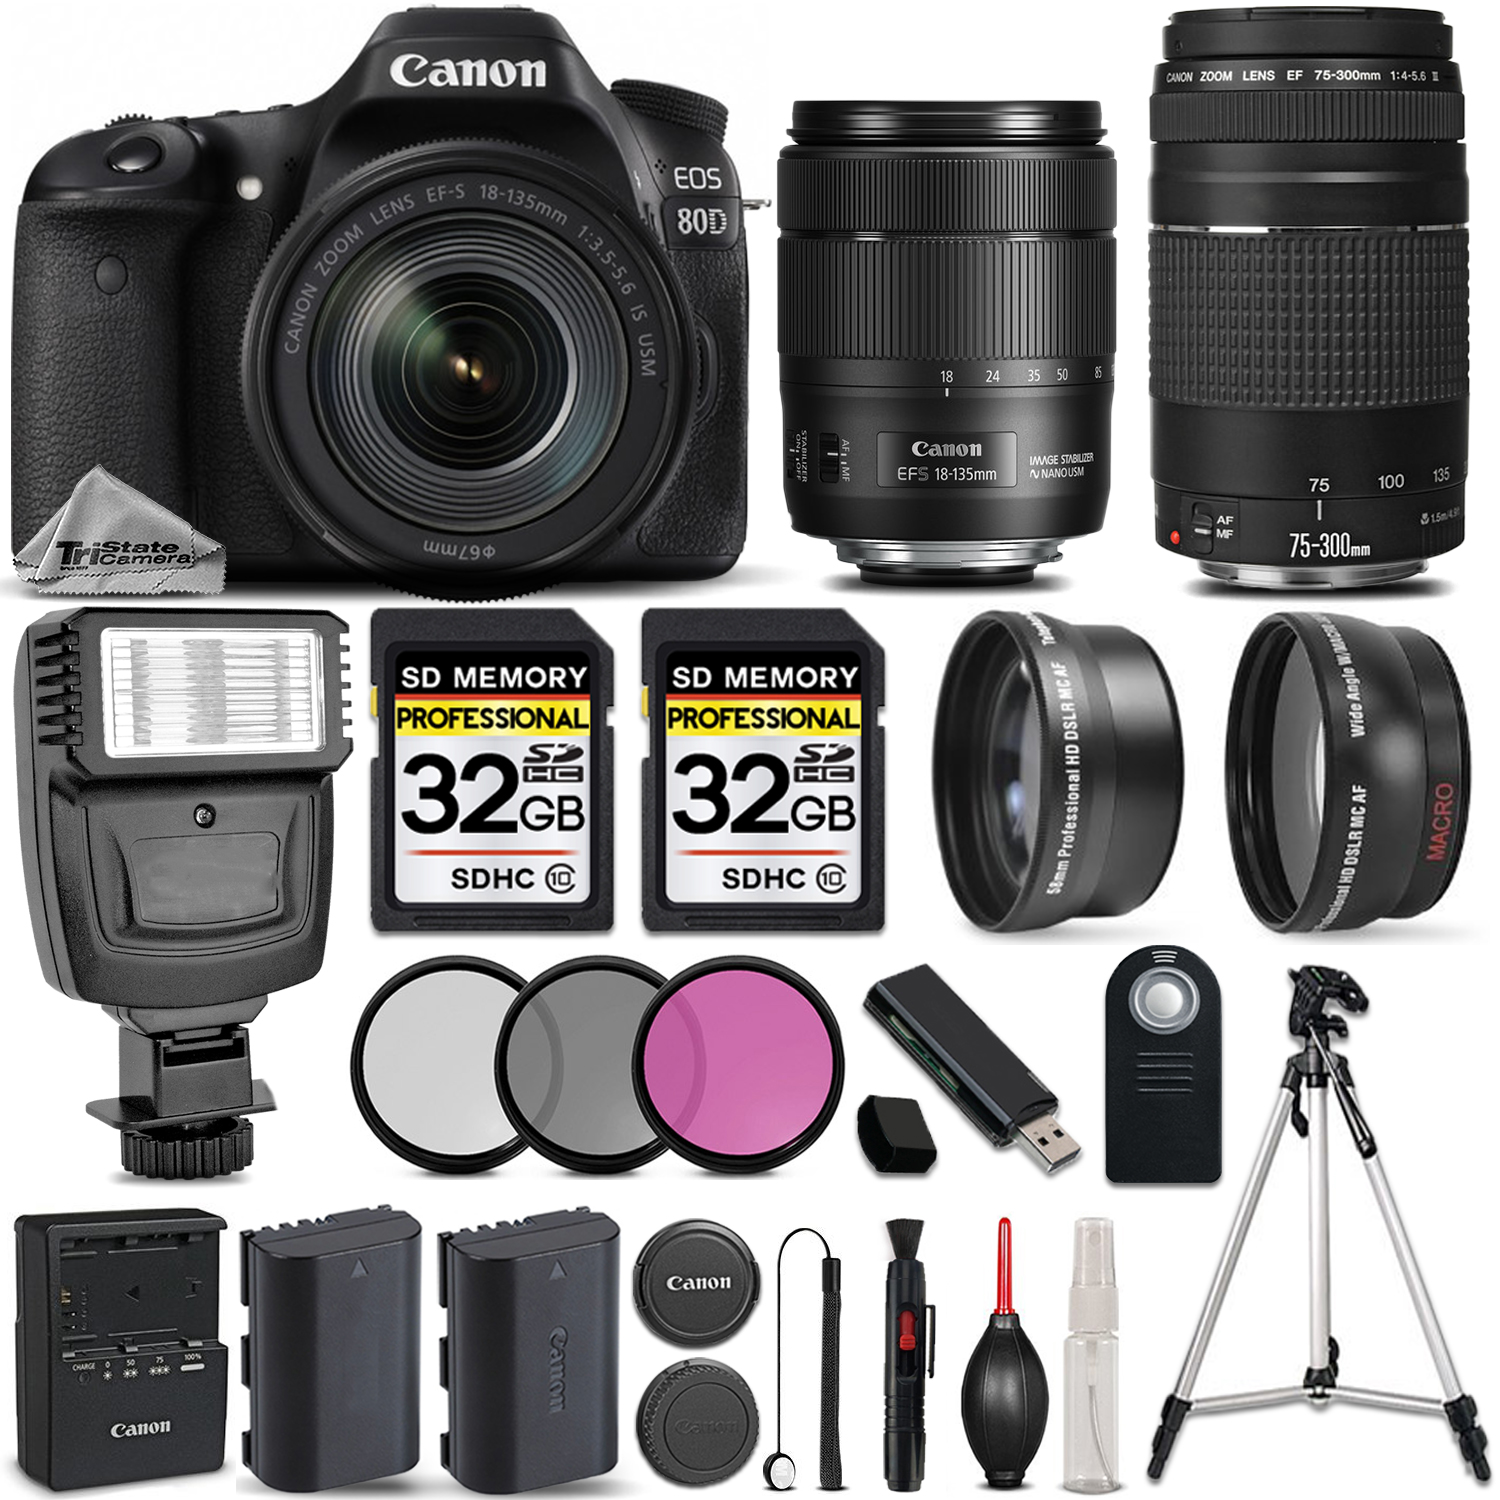 EOS 80D DSLR Camera with 18-135mm USM Lens + Canon 75-300 III - 64GB KIT *FREE SHIPPING*